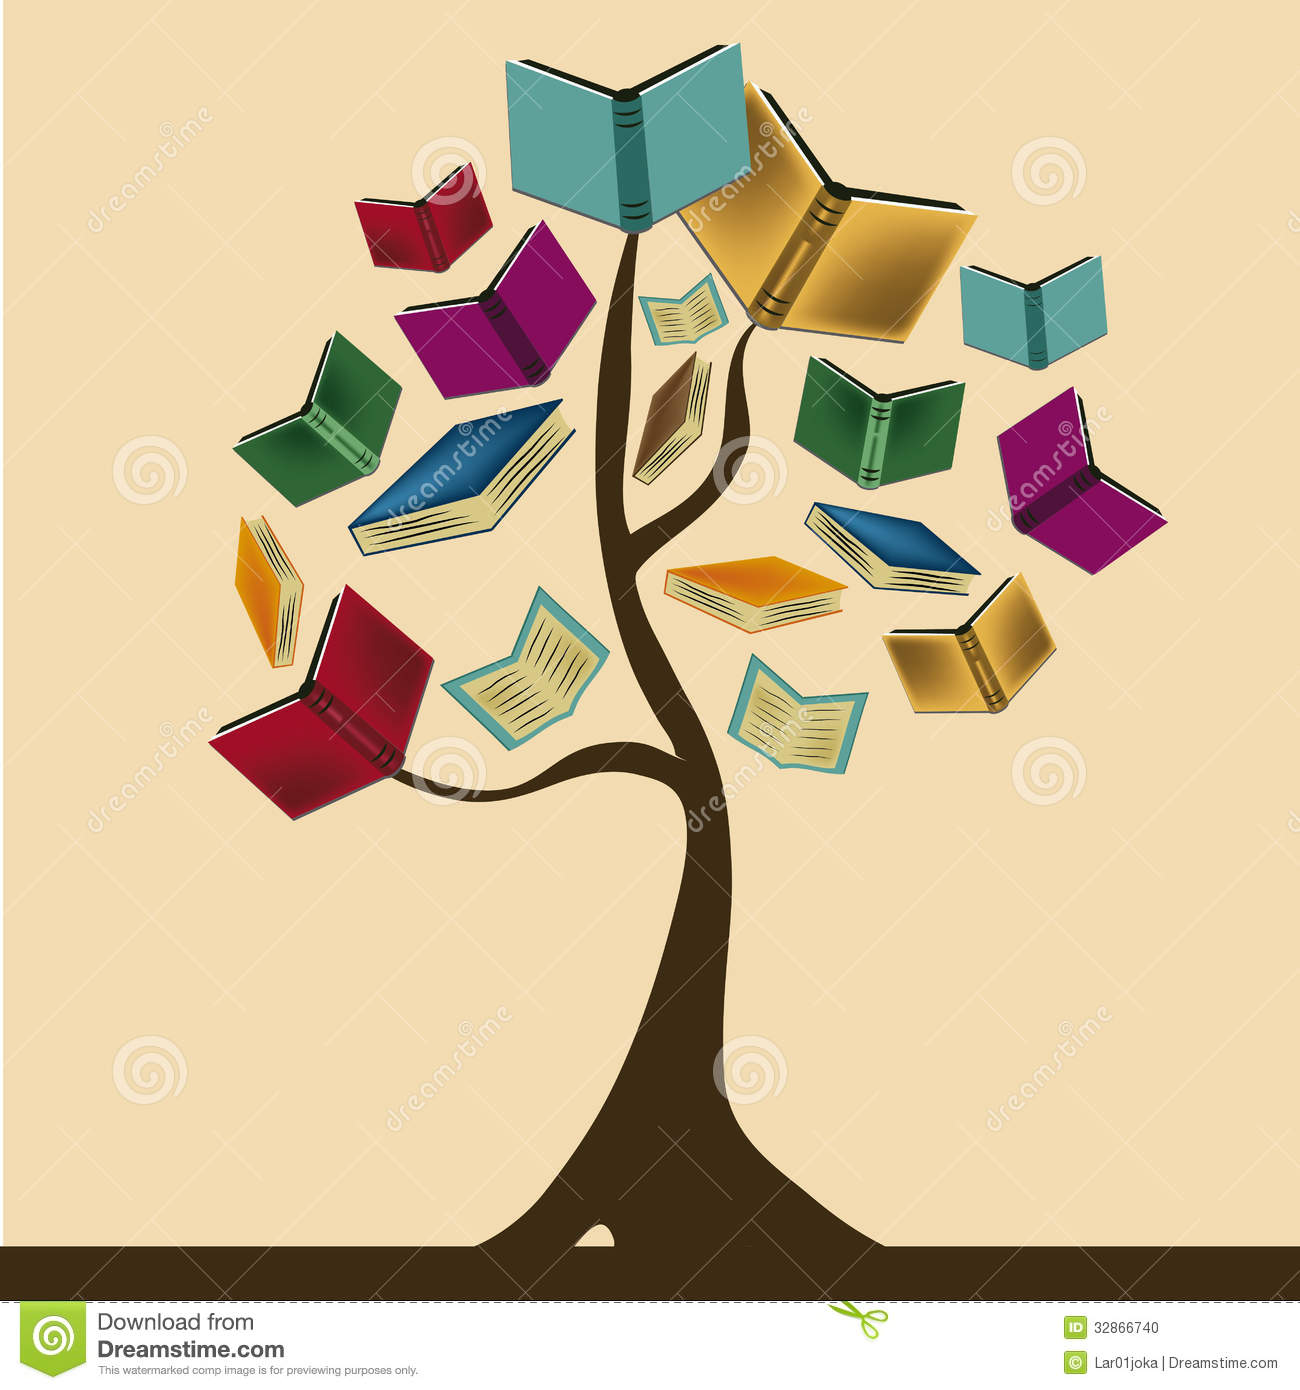 book tree clipart - photo #7